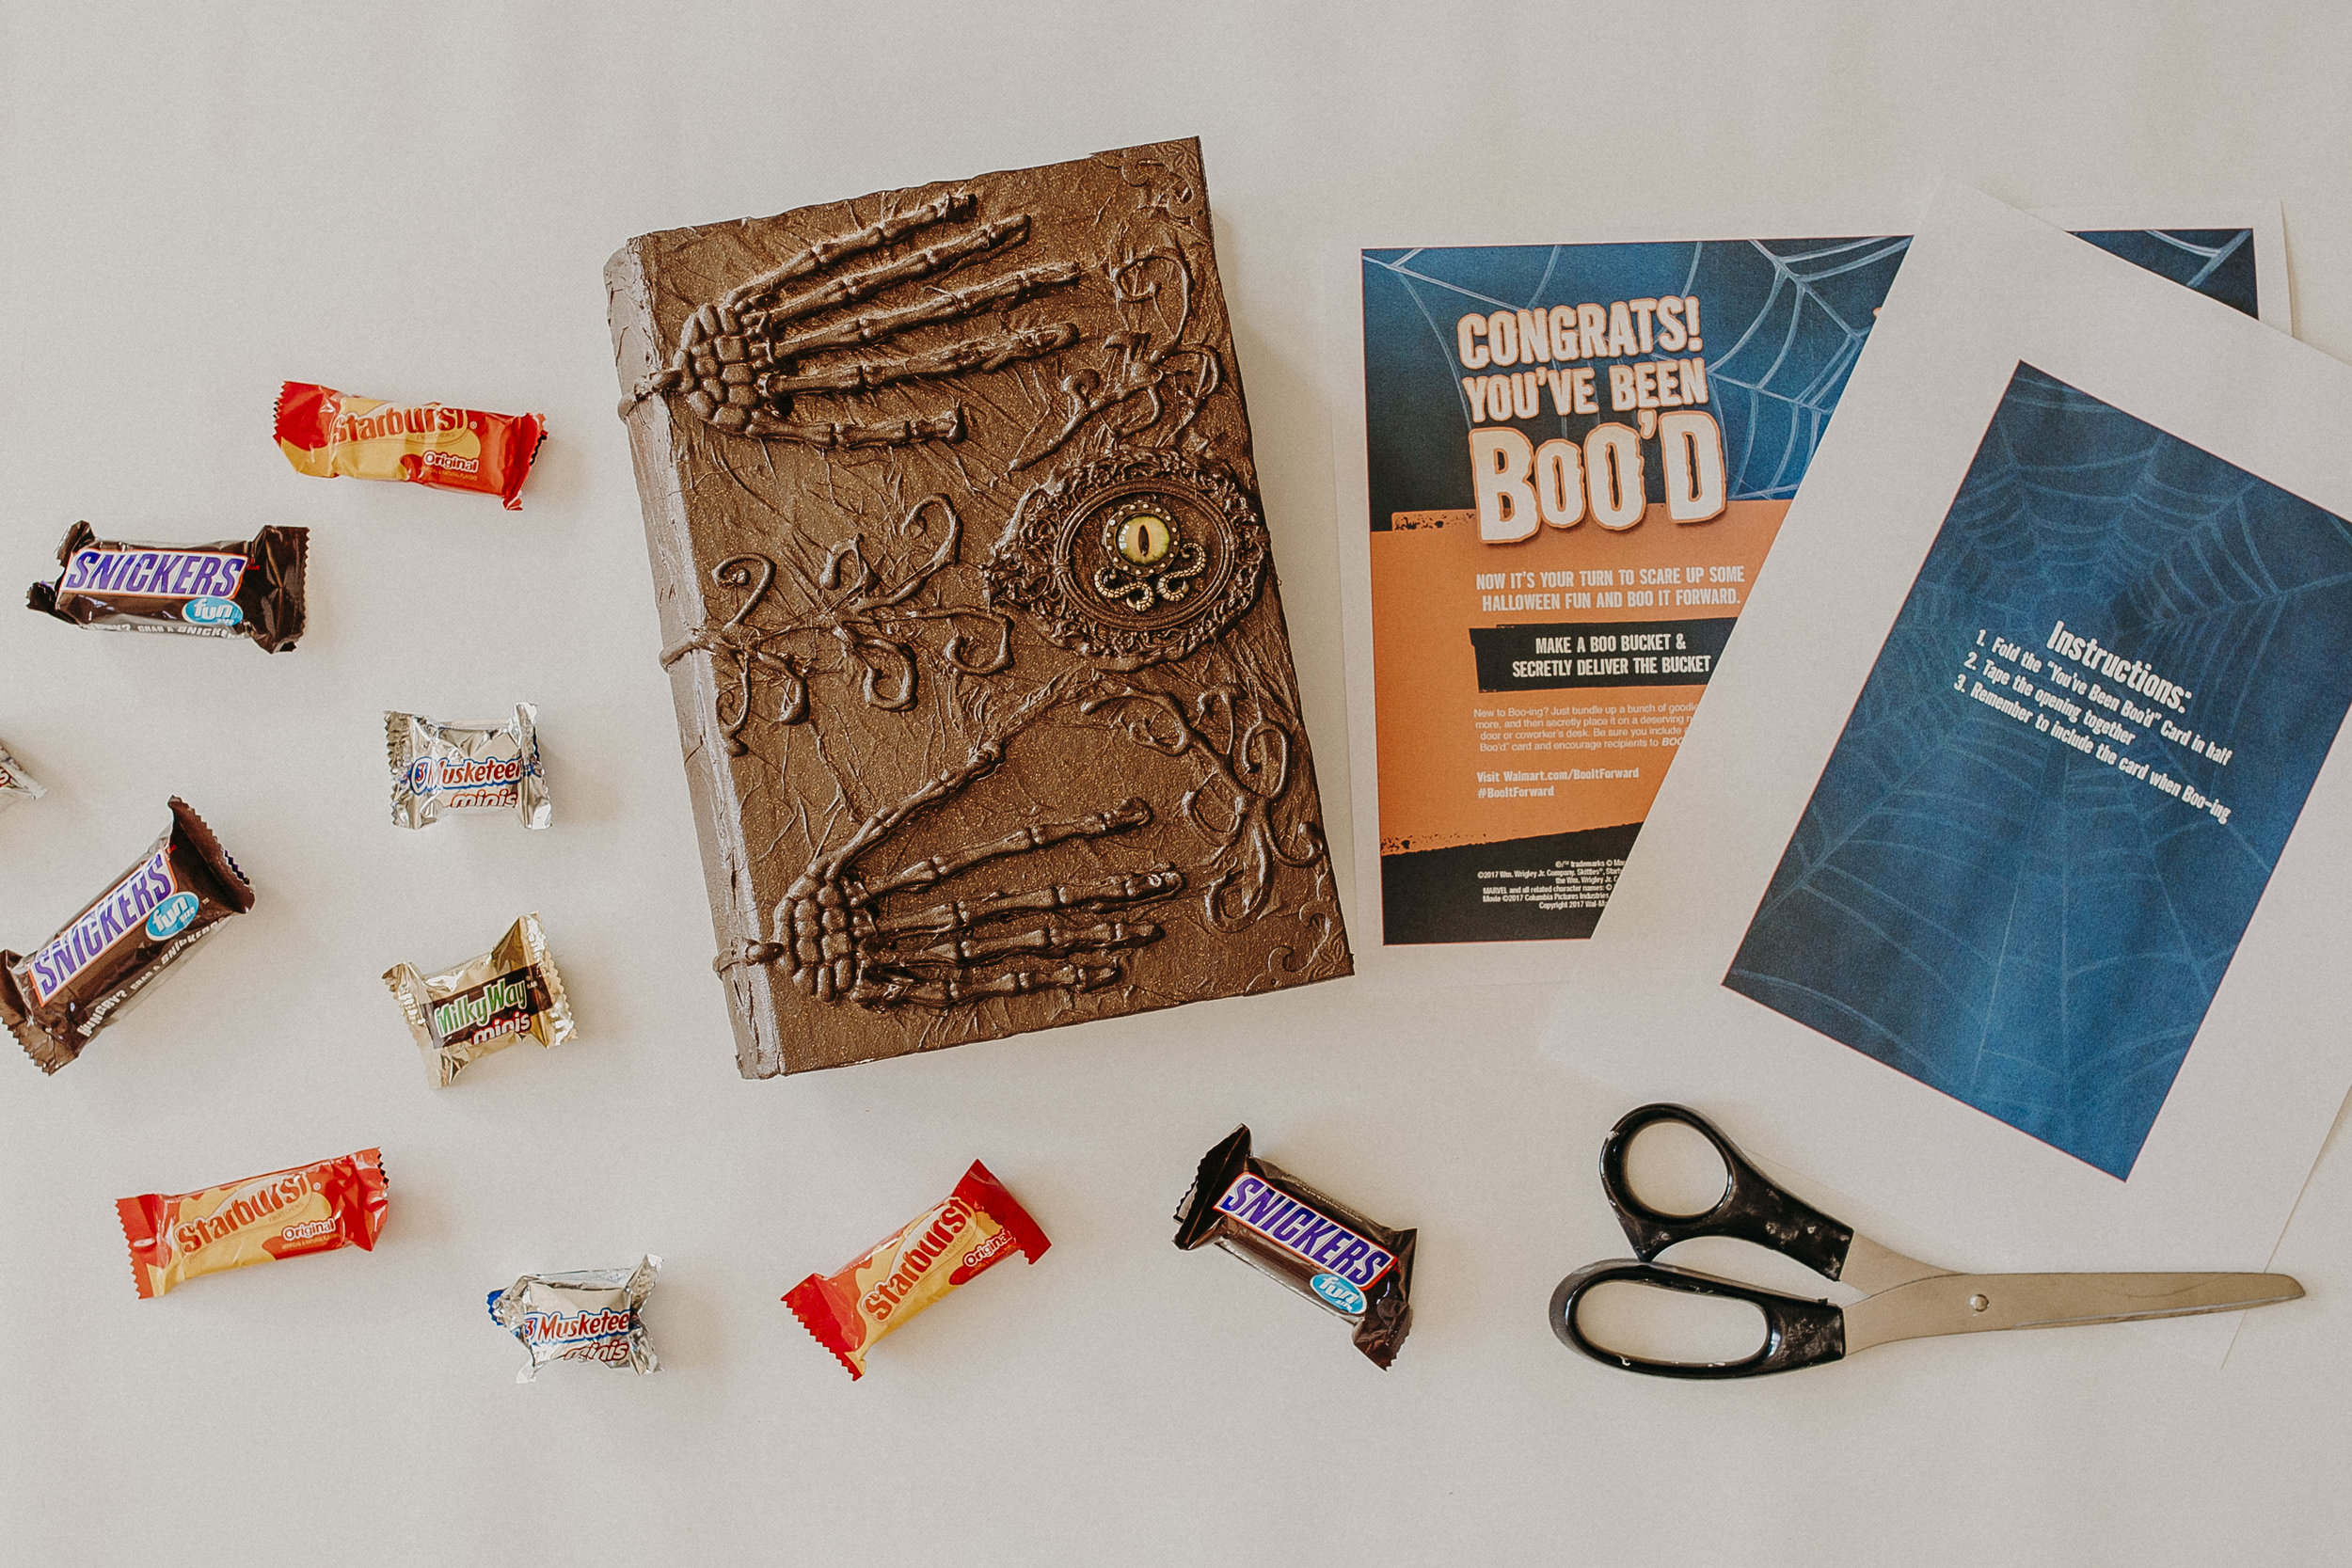 Step Seven: Once your BOO Kit is complete, fill it with Halloween goodies and deliver to some unsuspecting neighbors!